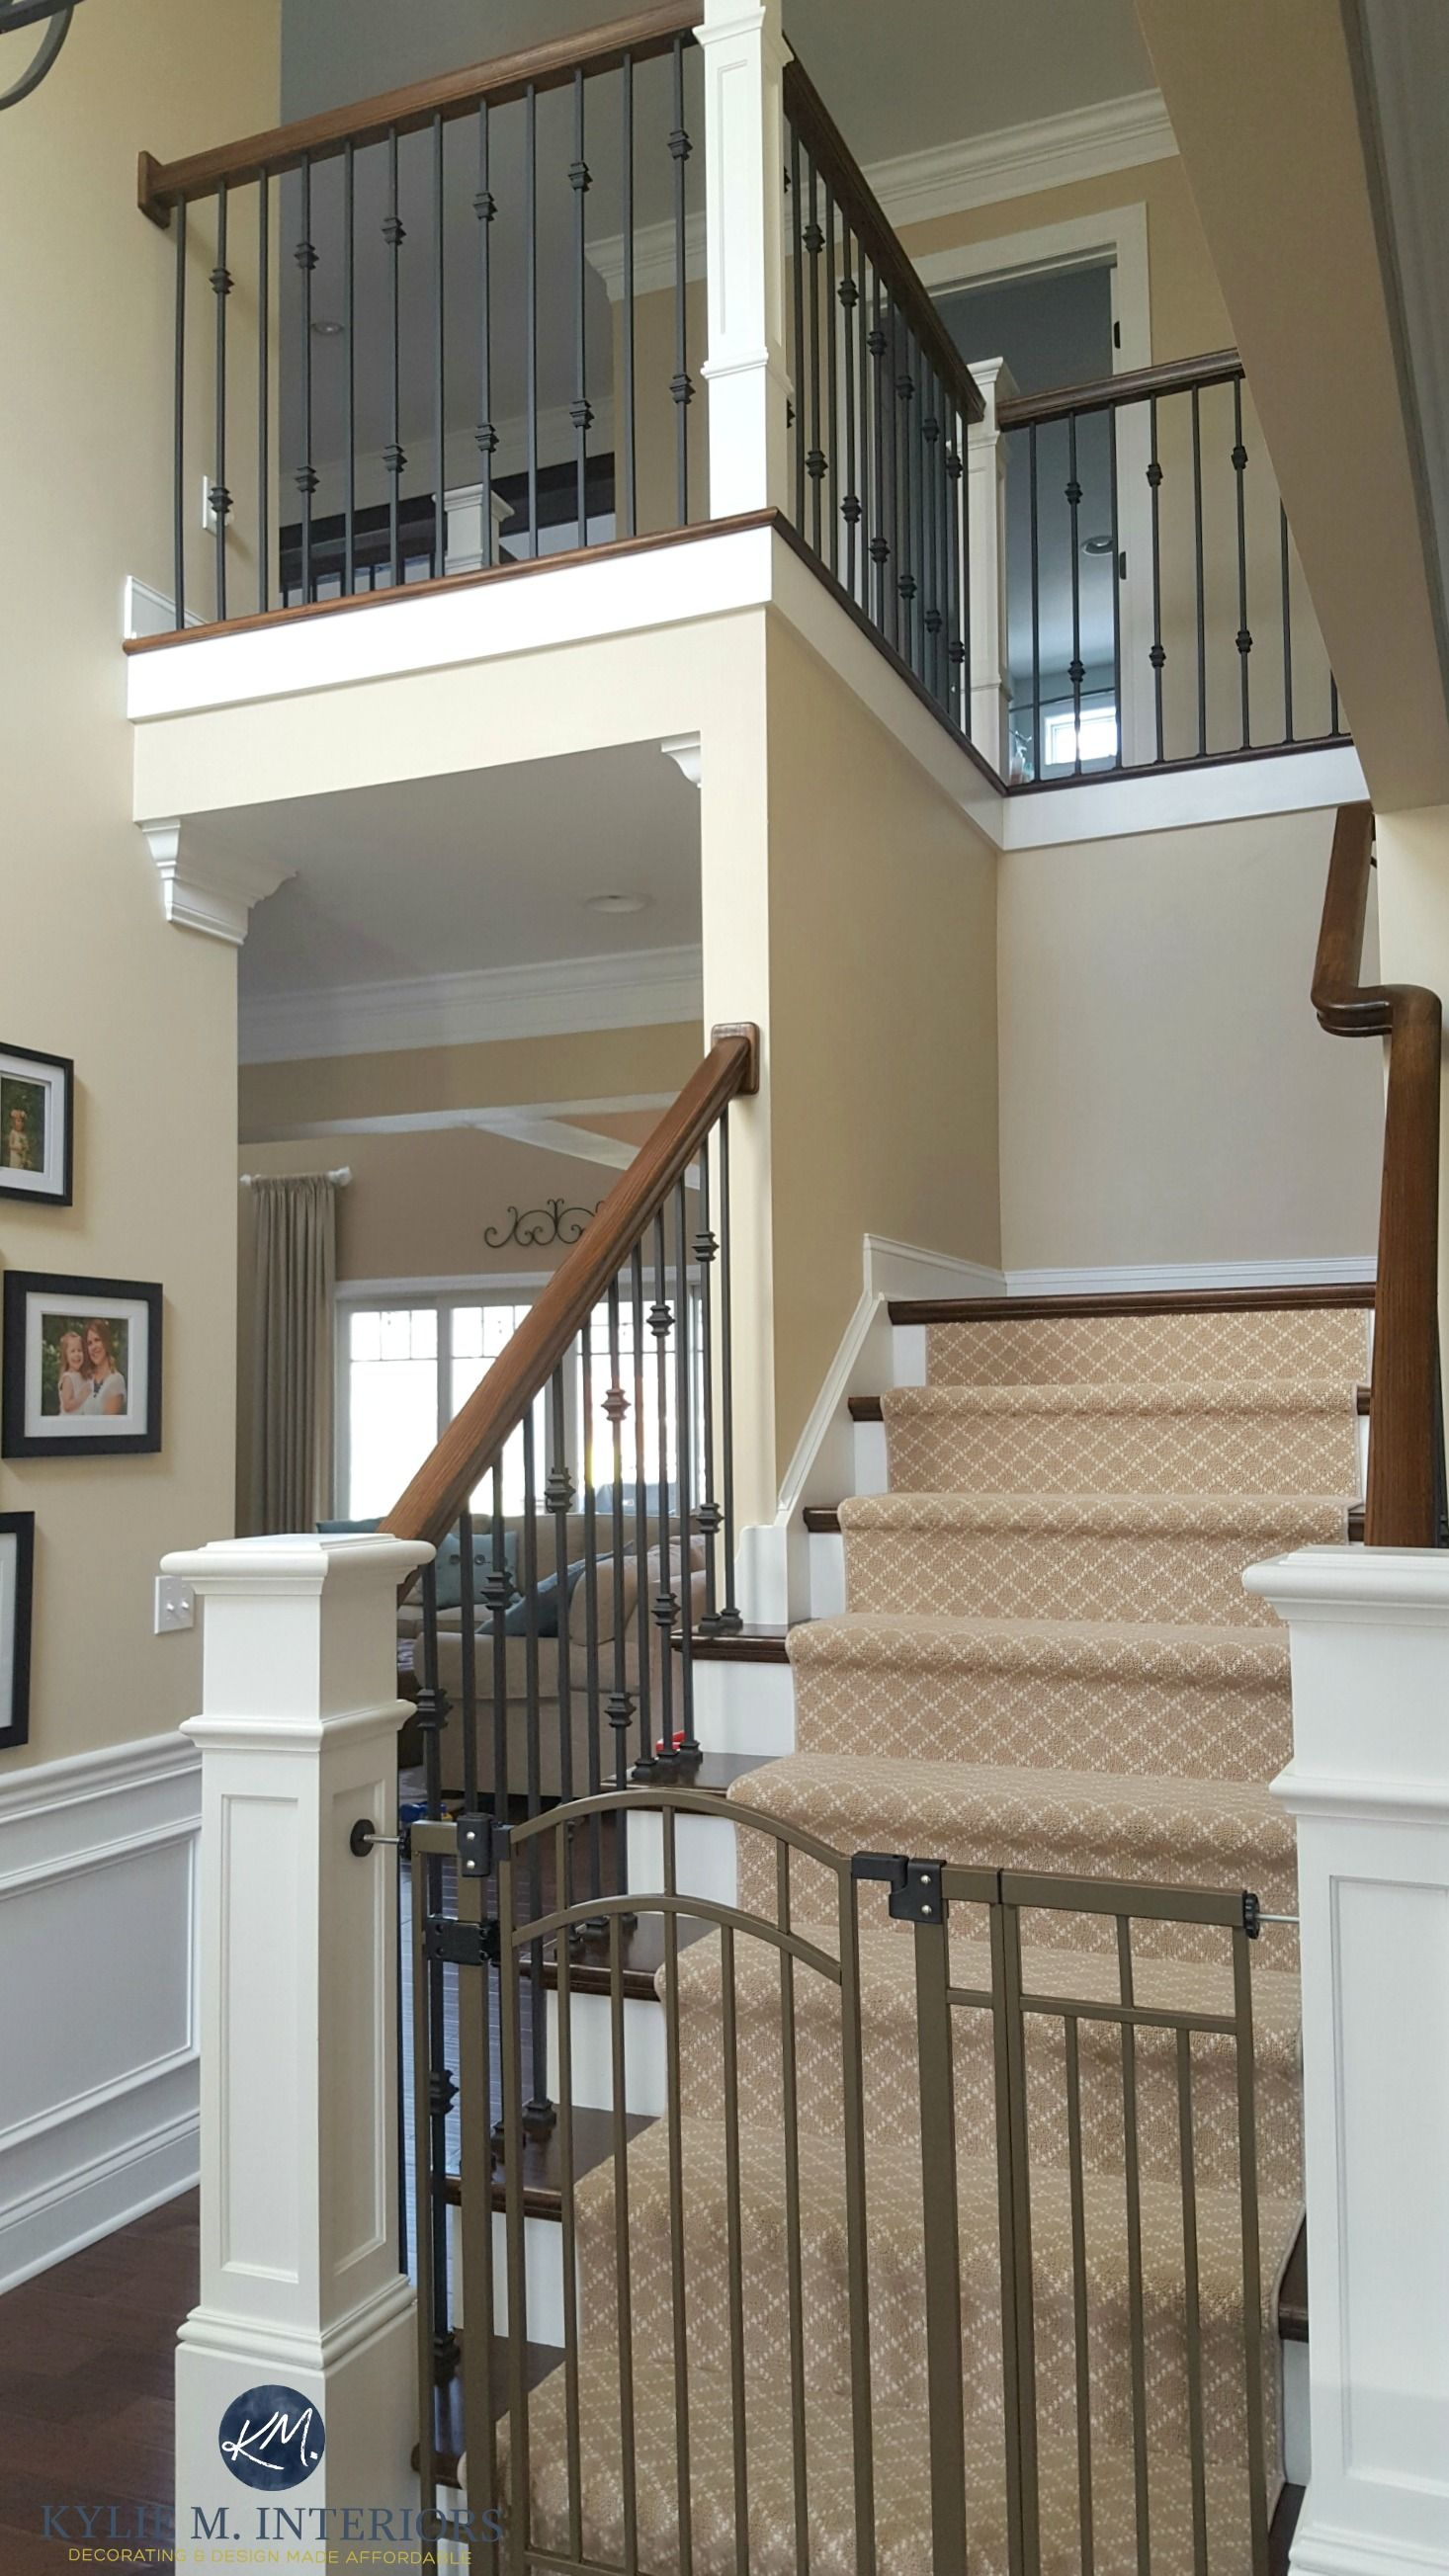 Sherwin williams kilim beige in stairwell and hallway with metal wood railing and carpet runner kylie m interiors e design